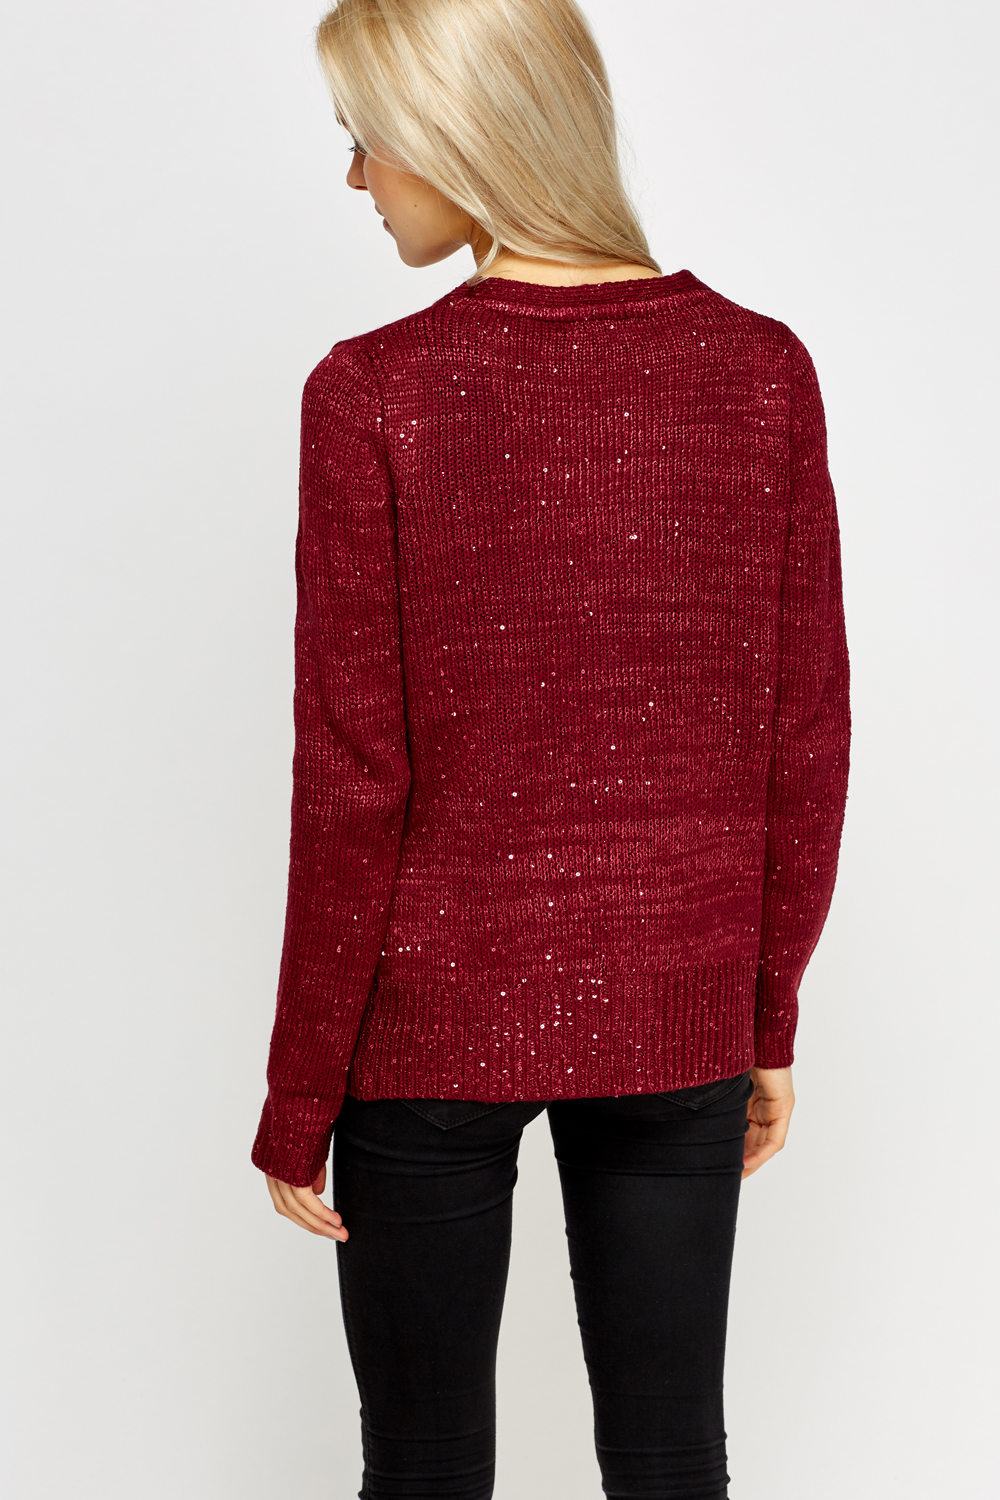 Sequin Knitted Cardigan - Maroon or Off White - Just £5